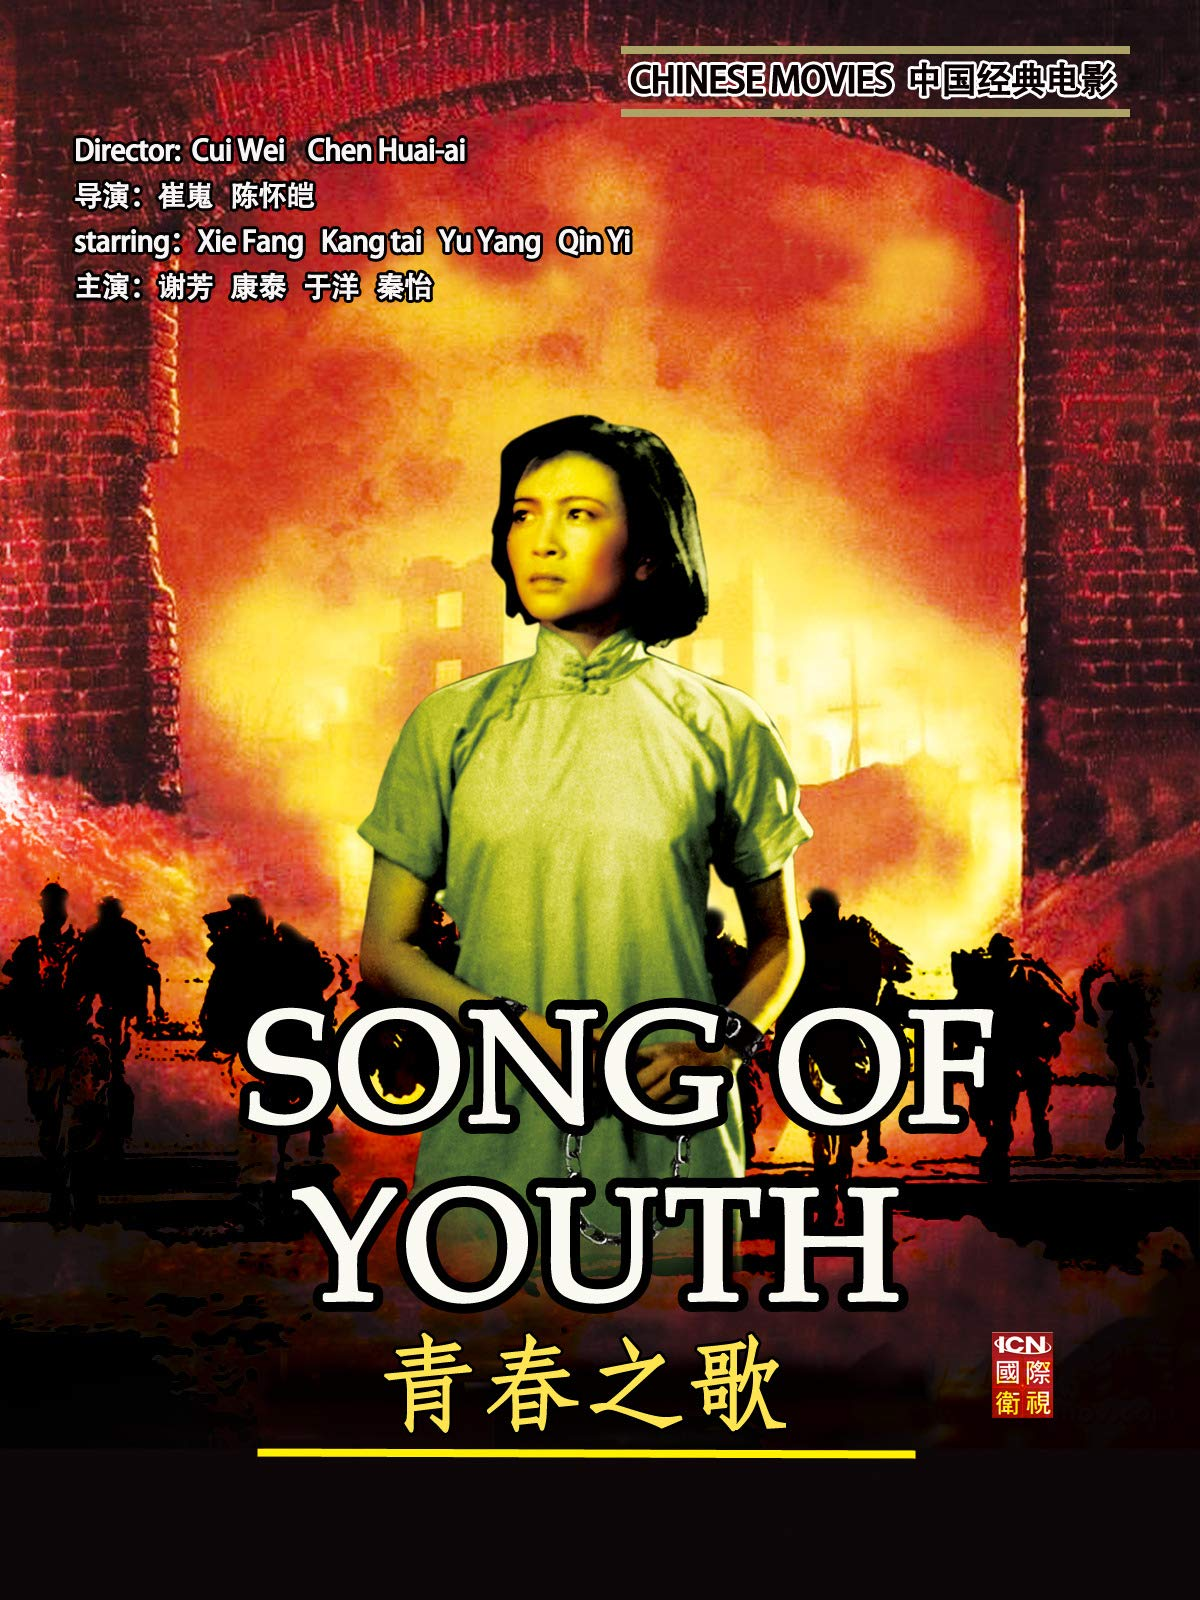 Chinese Movies-Song of Youth